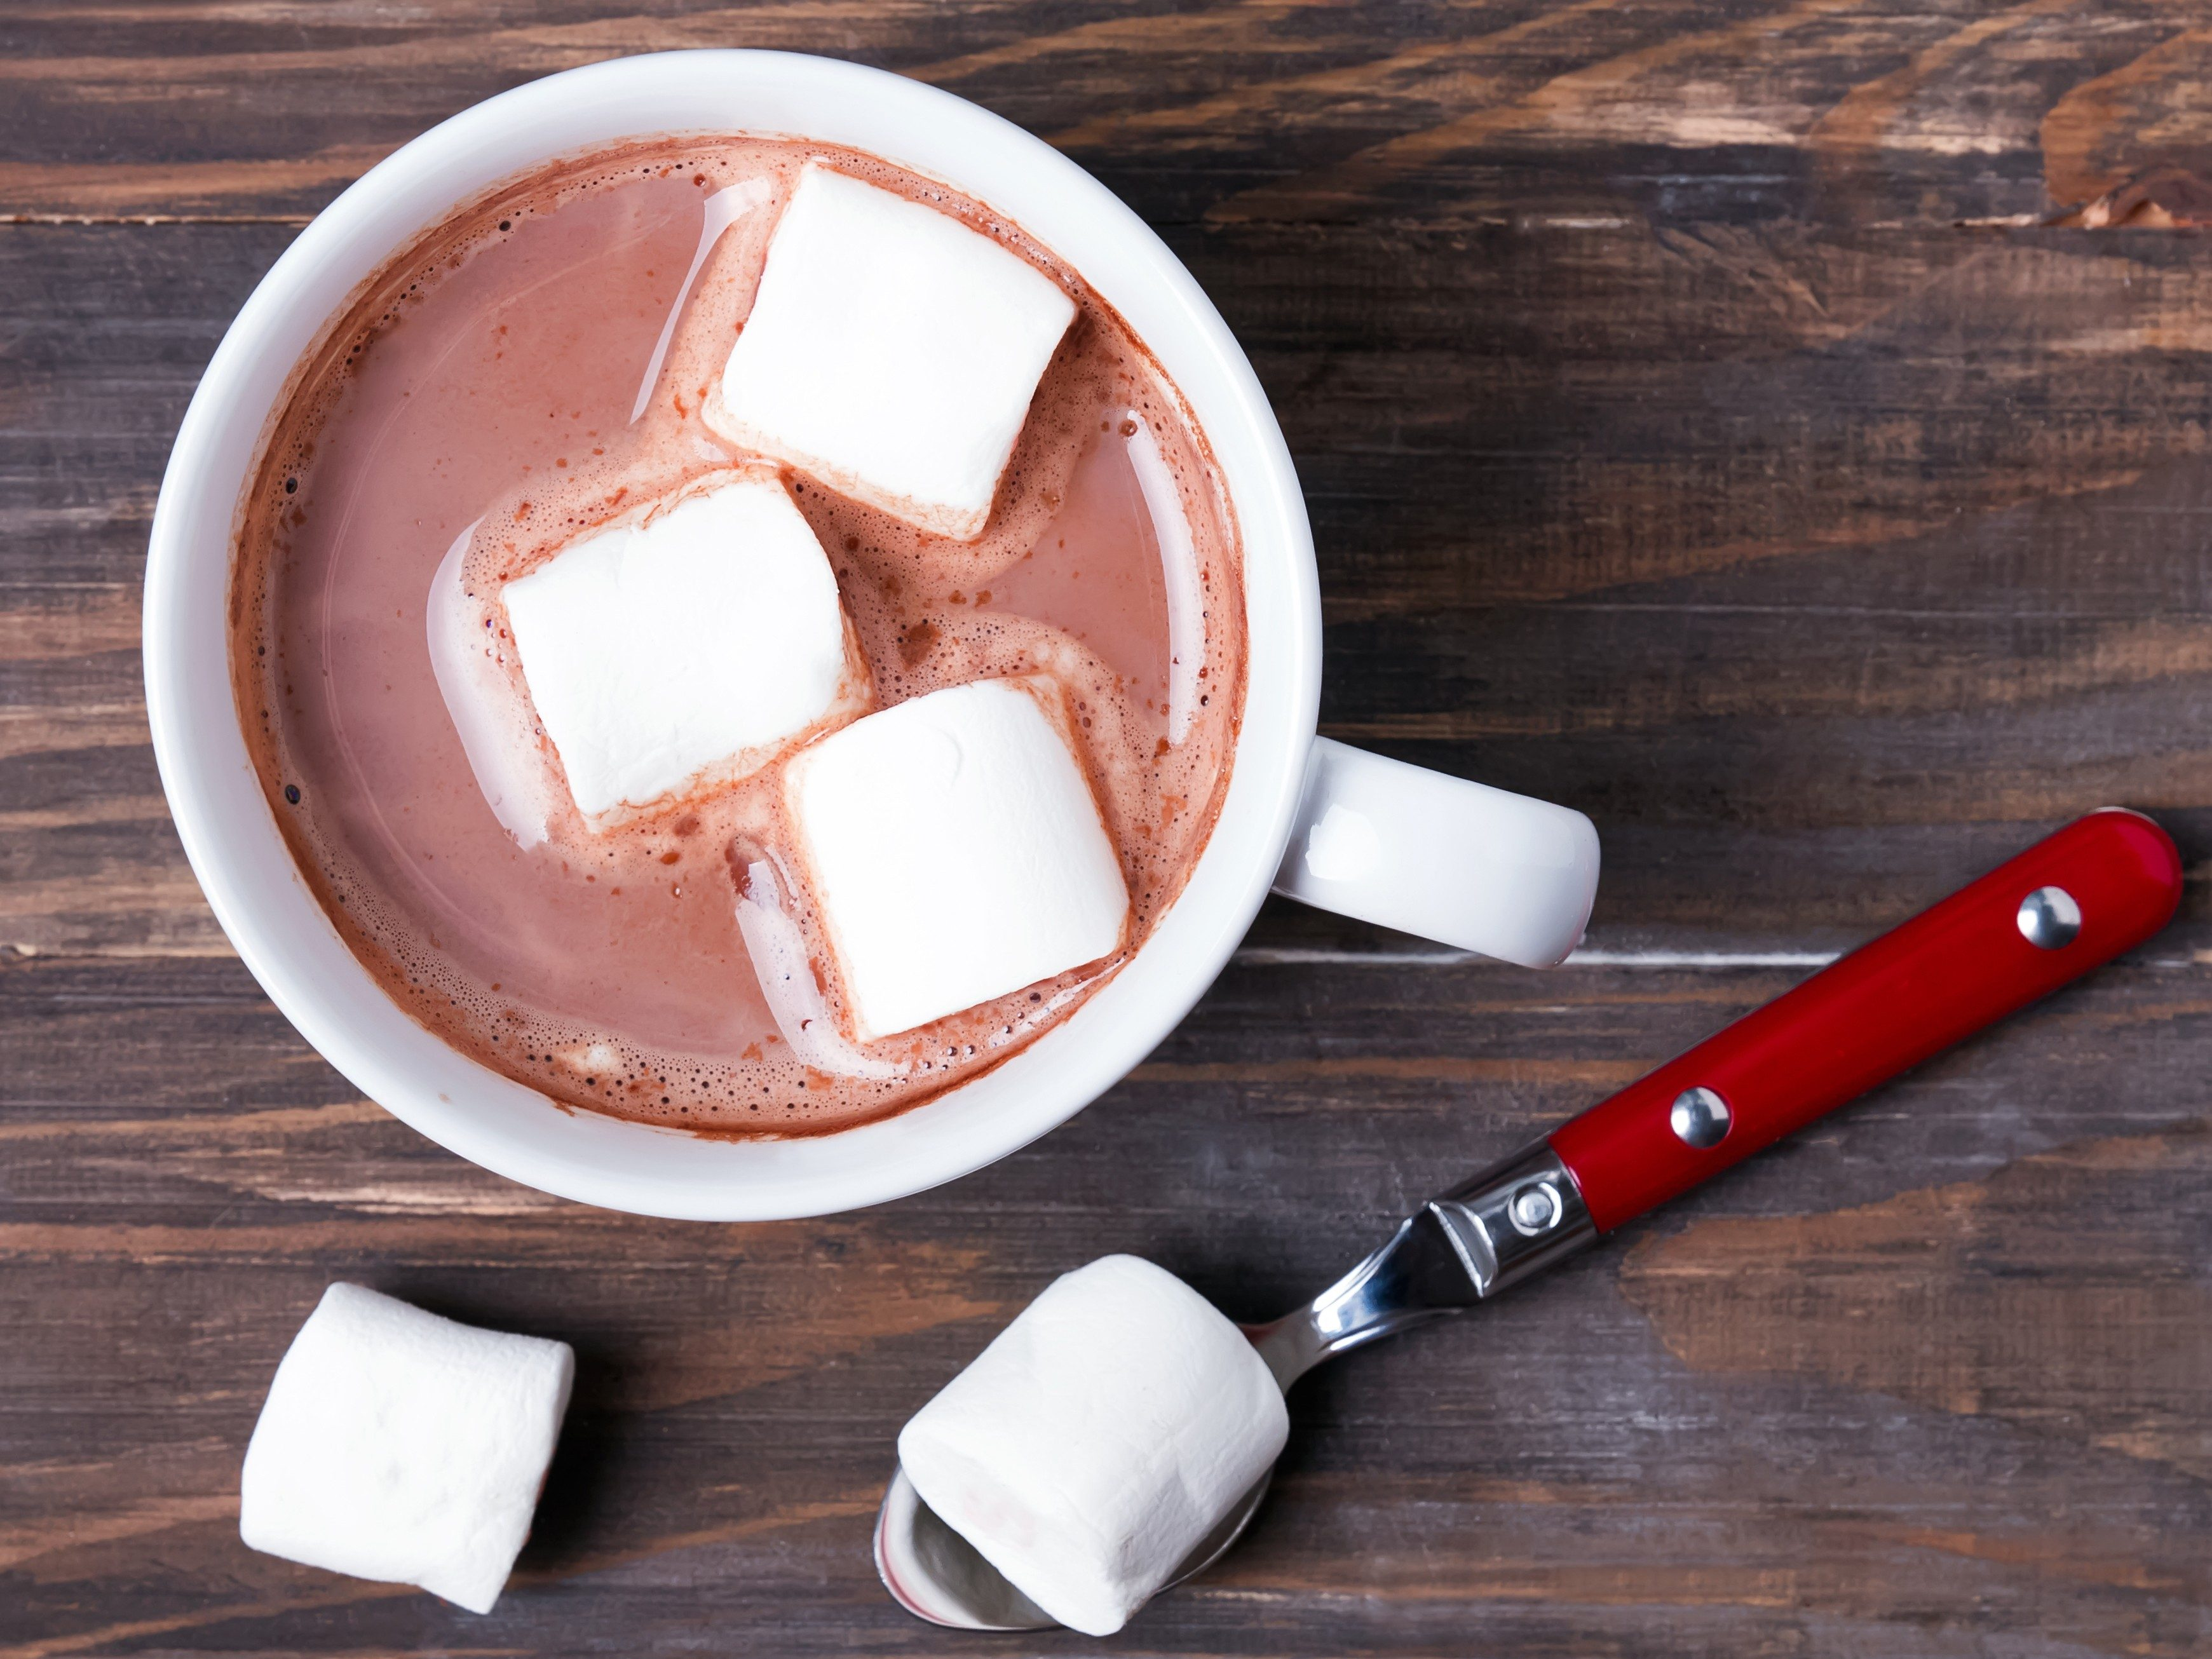 5 New Uses for Marshmallows